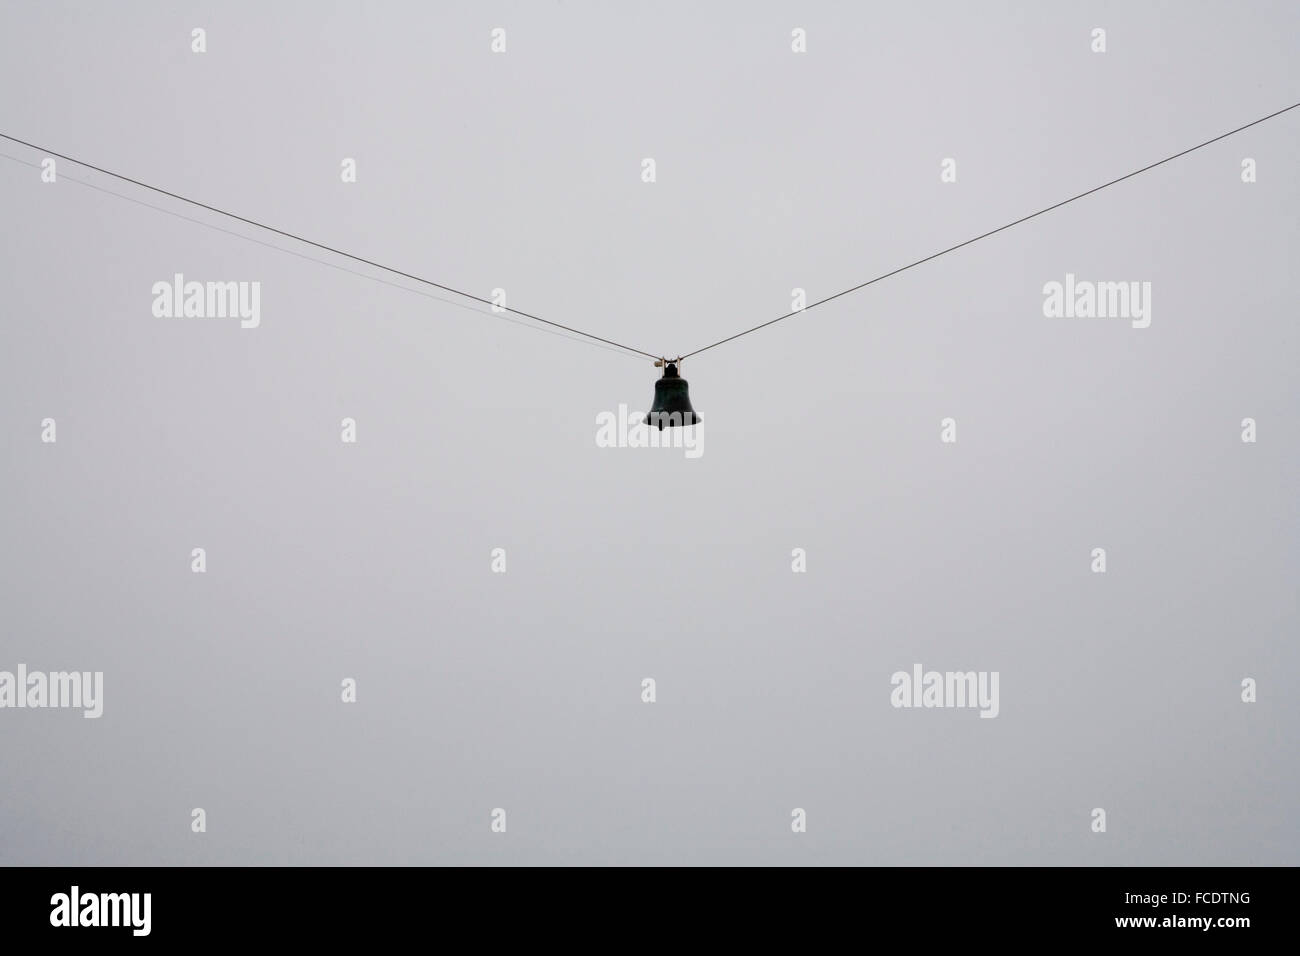 Bell hanging on wire with grey sky - Stock Image